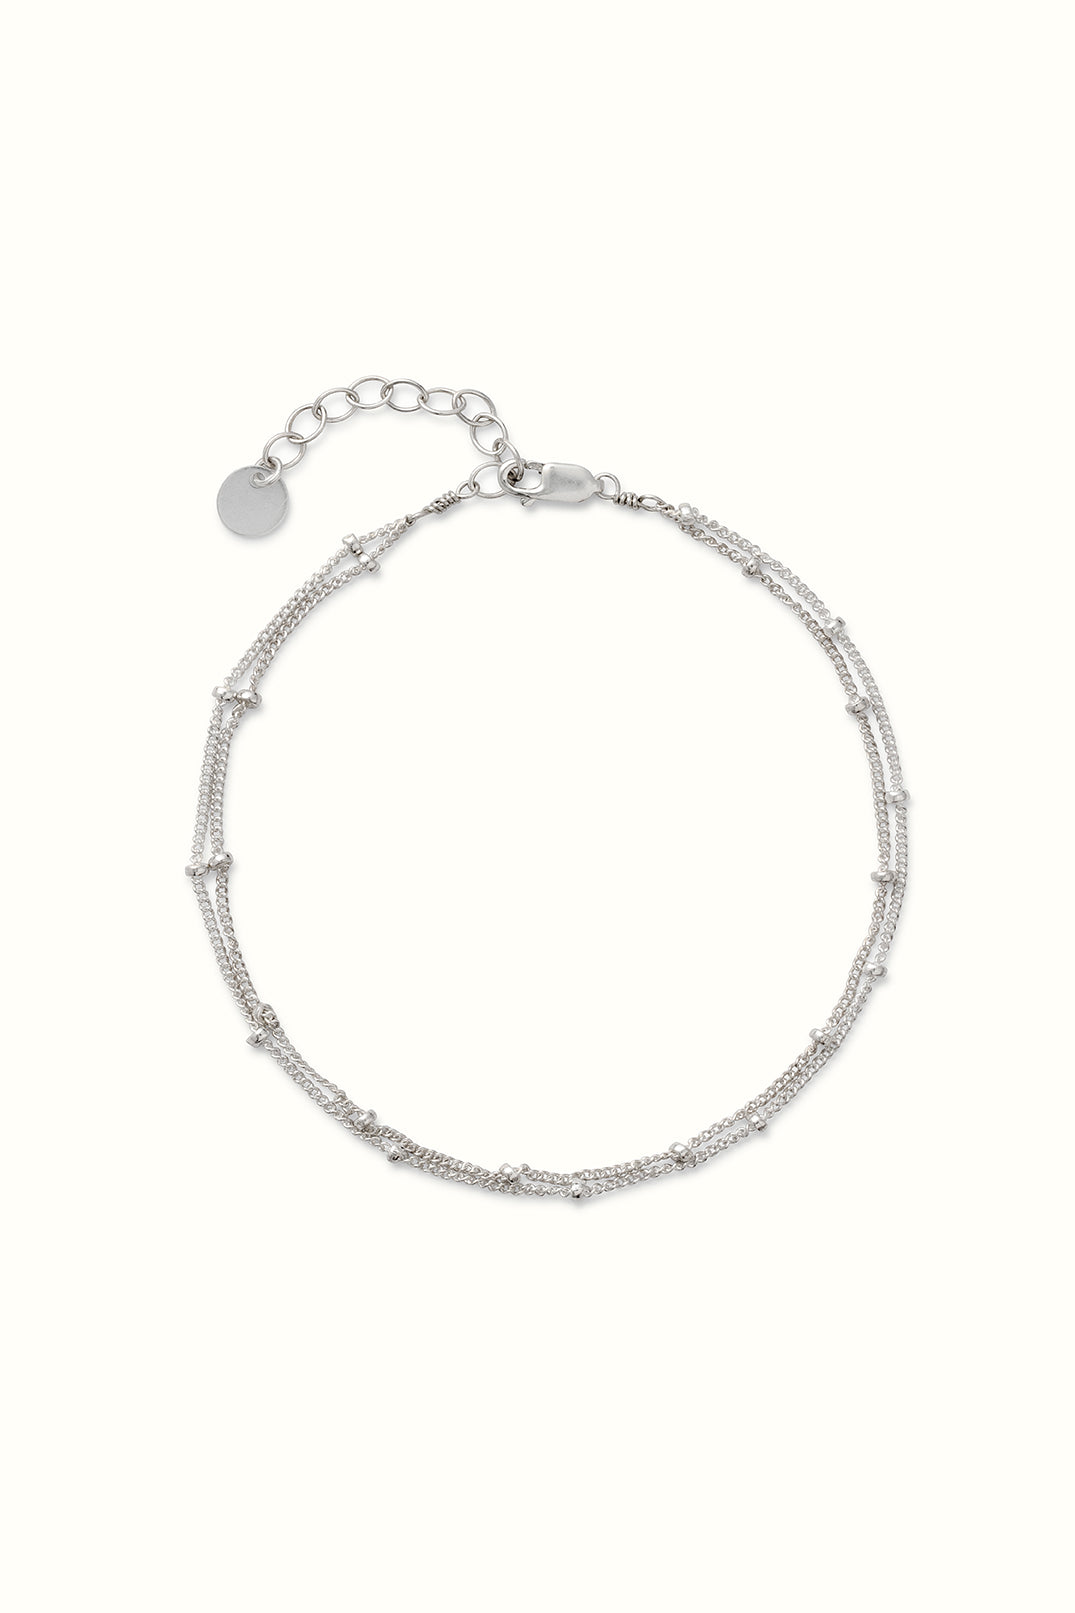 product picture of a silver saturn chain bracelet on a white surface